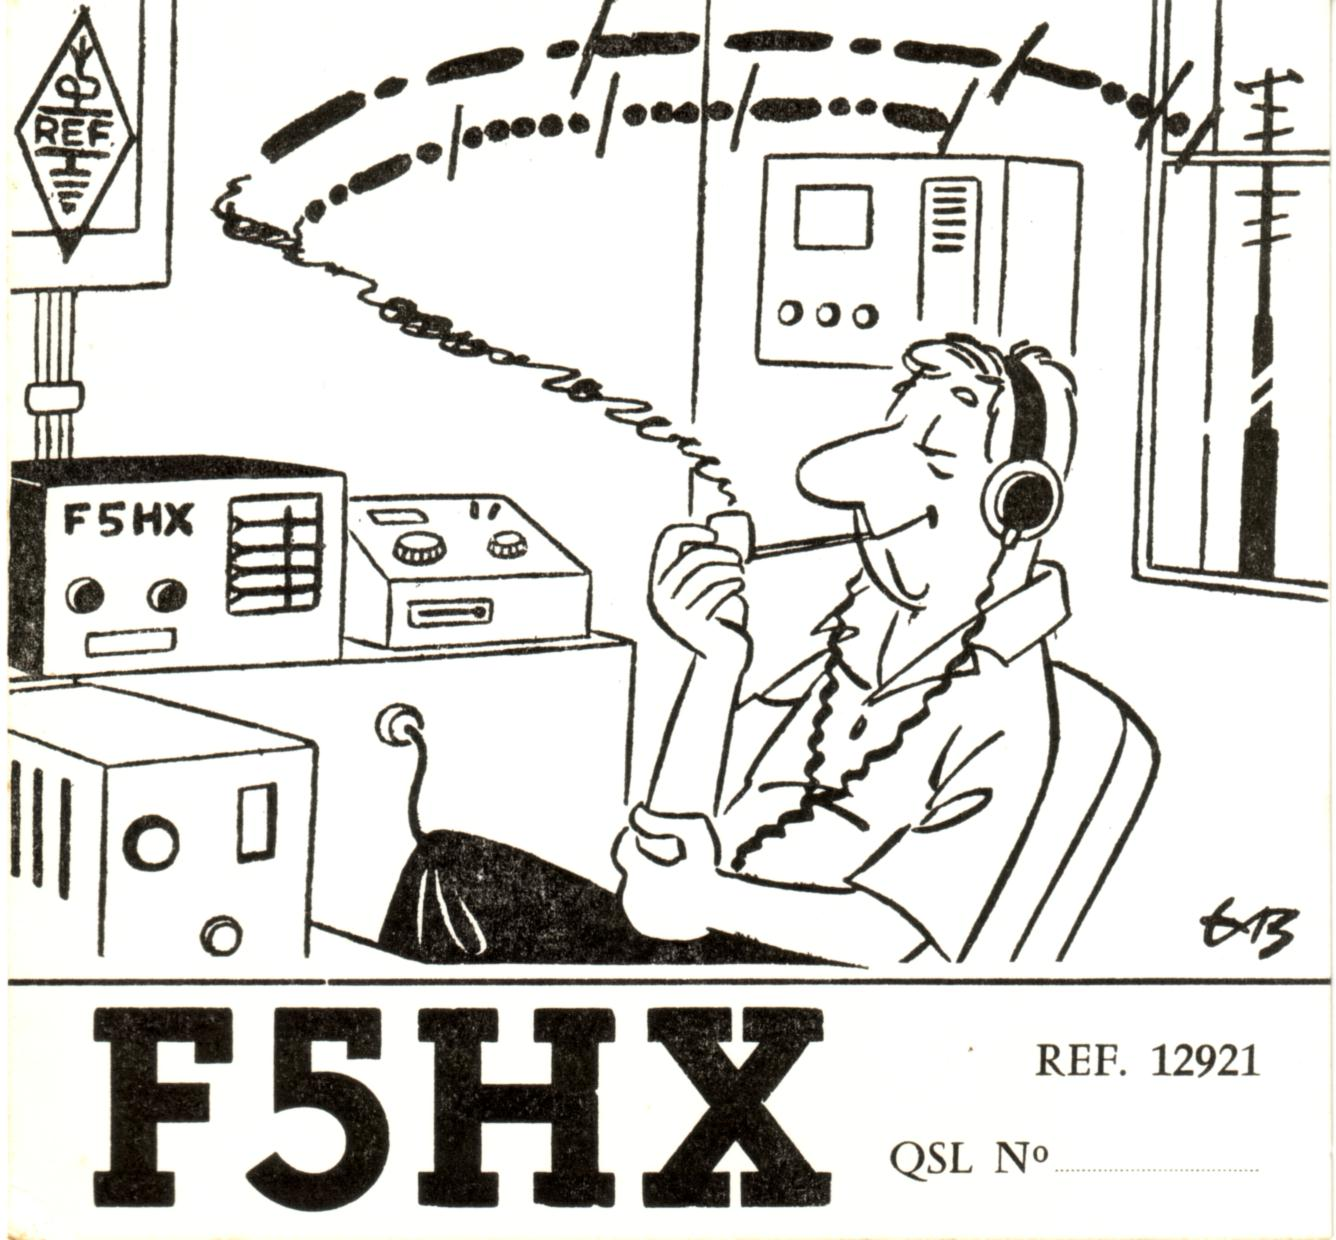 QSL image for F5HX